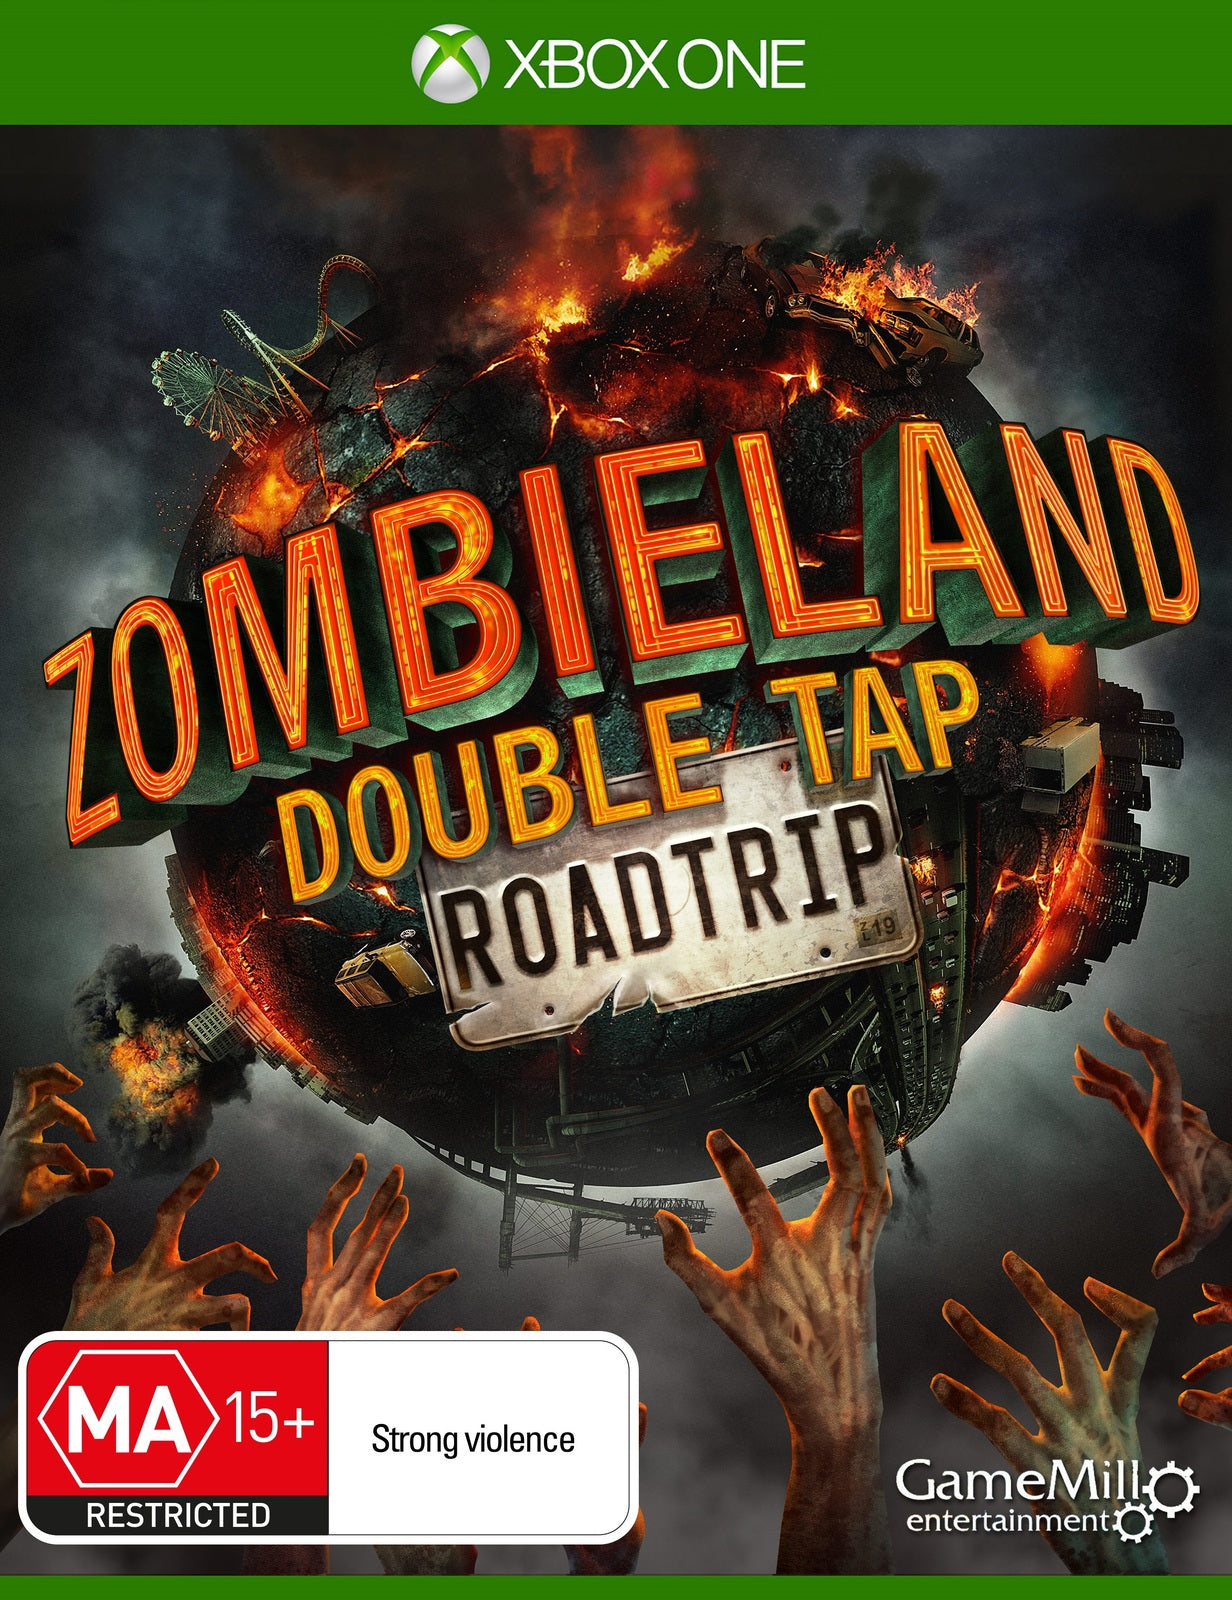 Zombieland: Double Tap - Road Trip - Xbox One